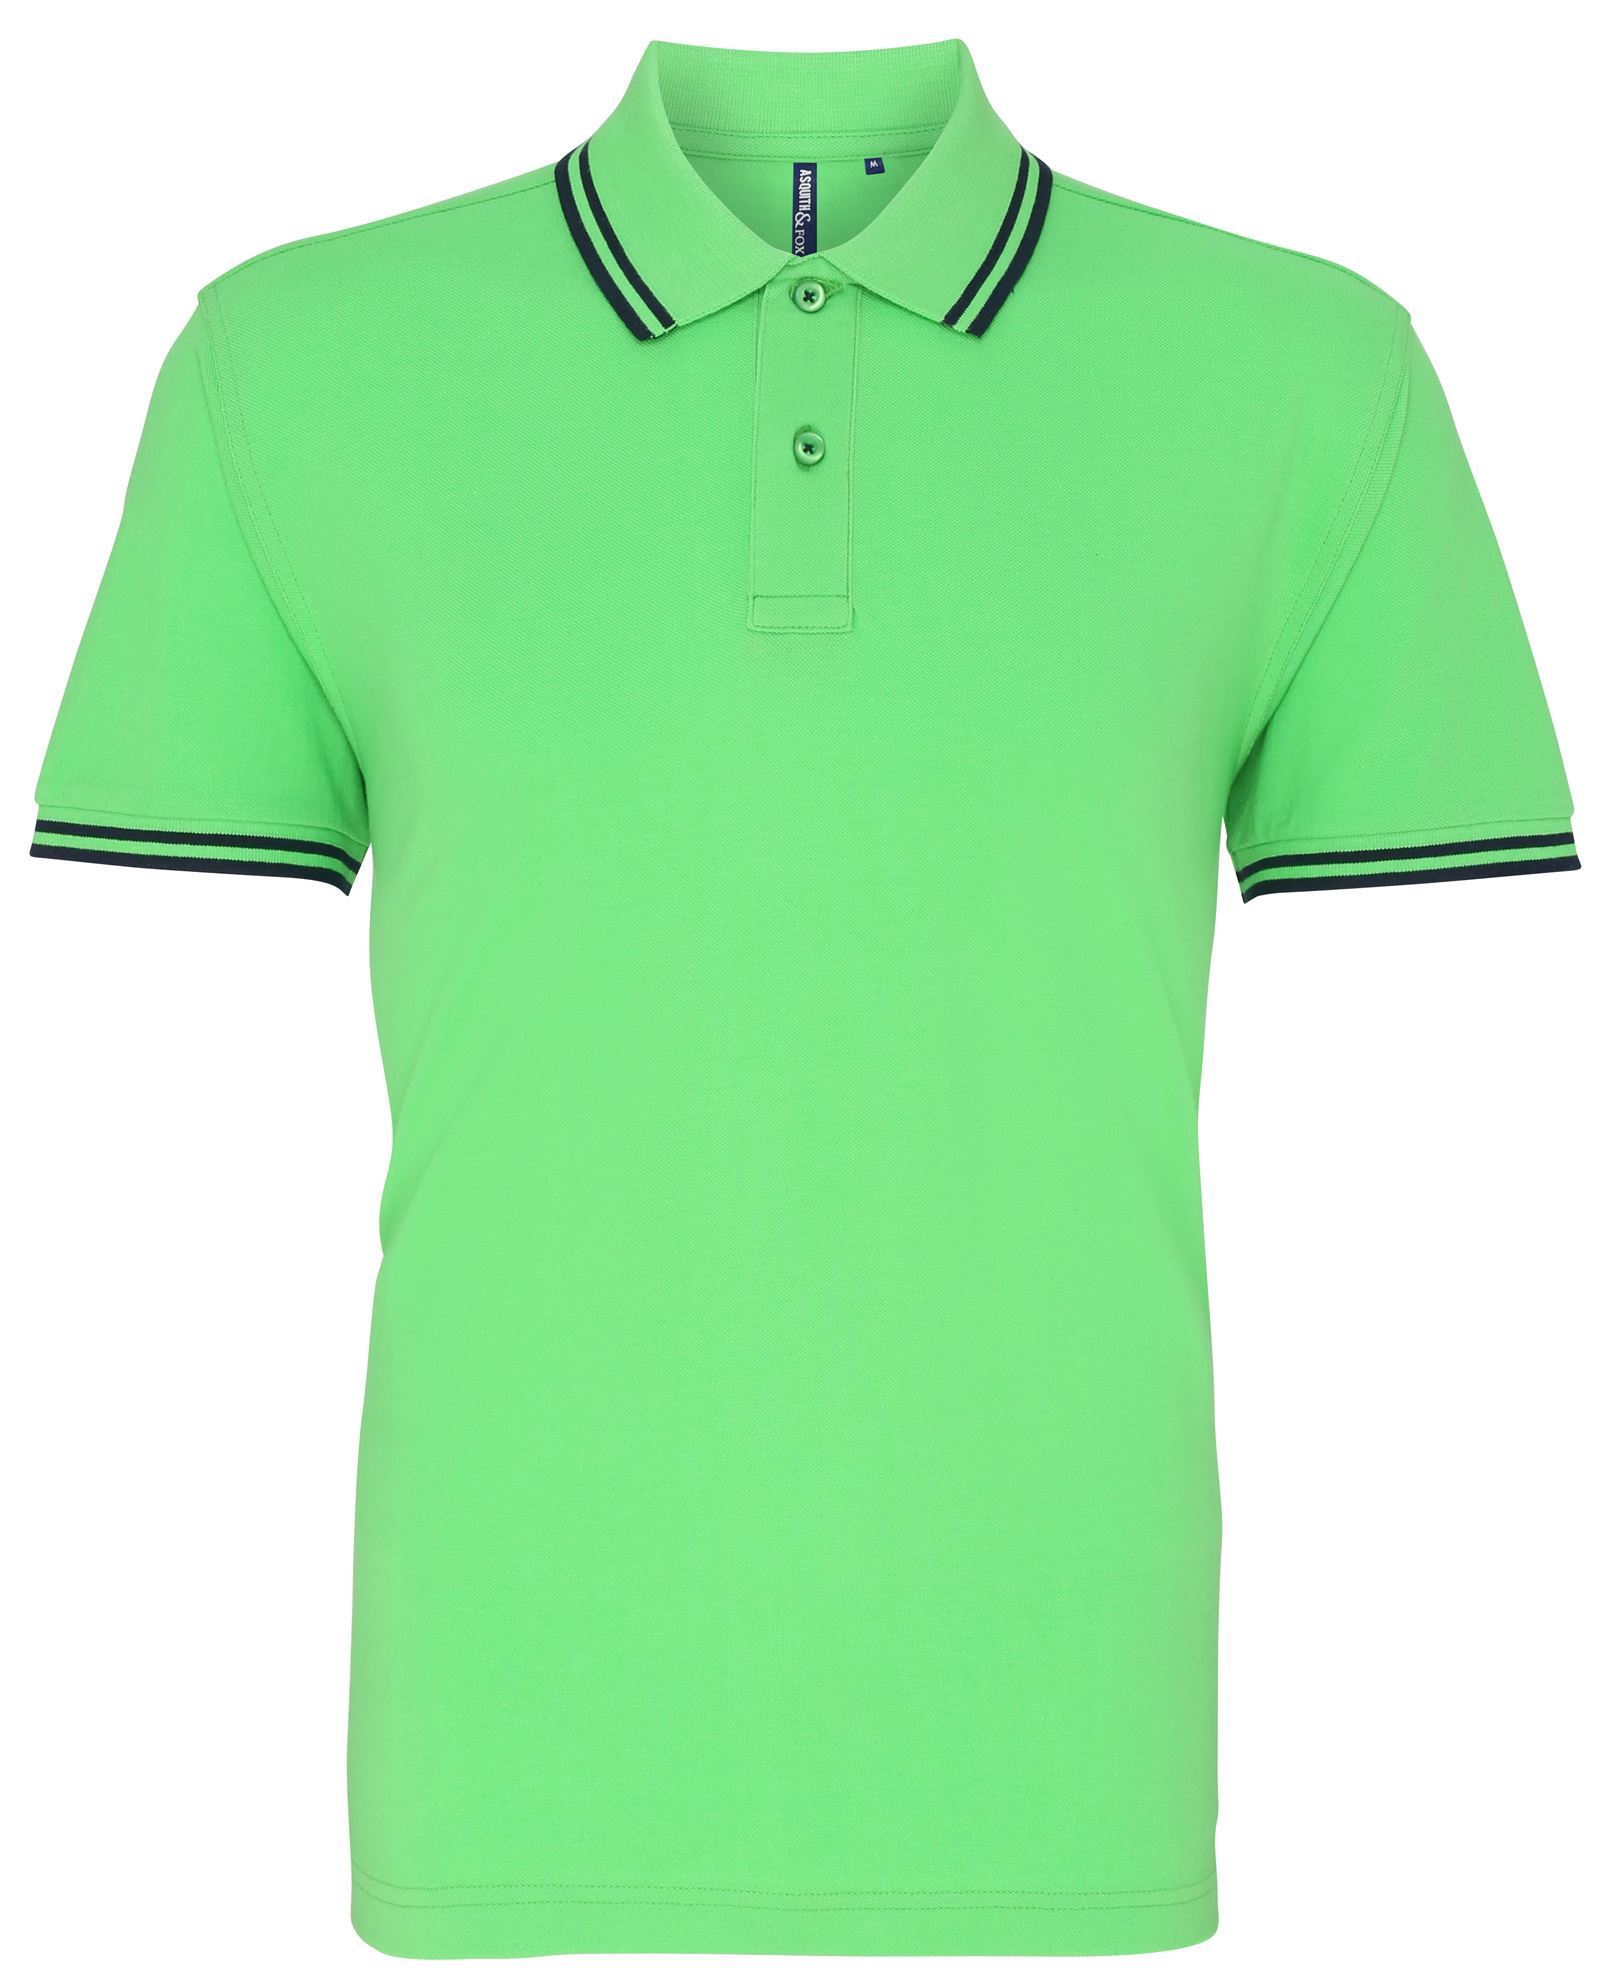 United Work Wear Tipped Polo Shirt